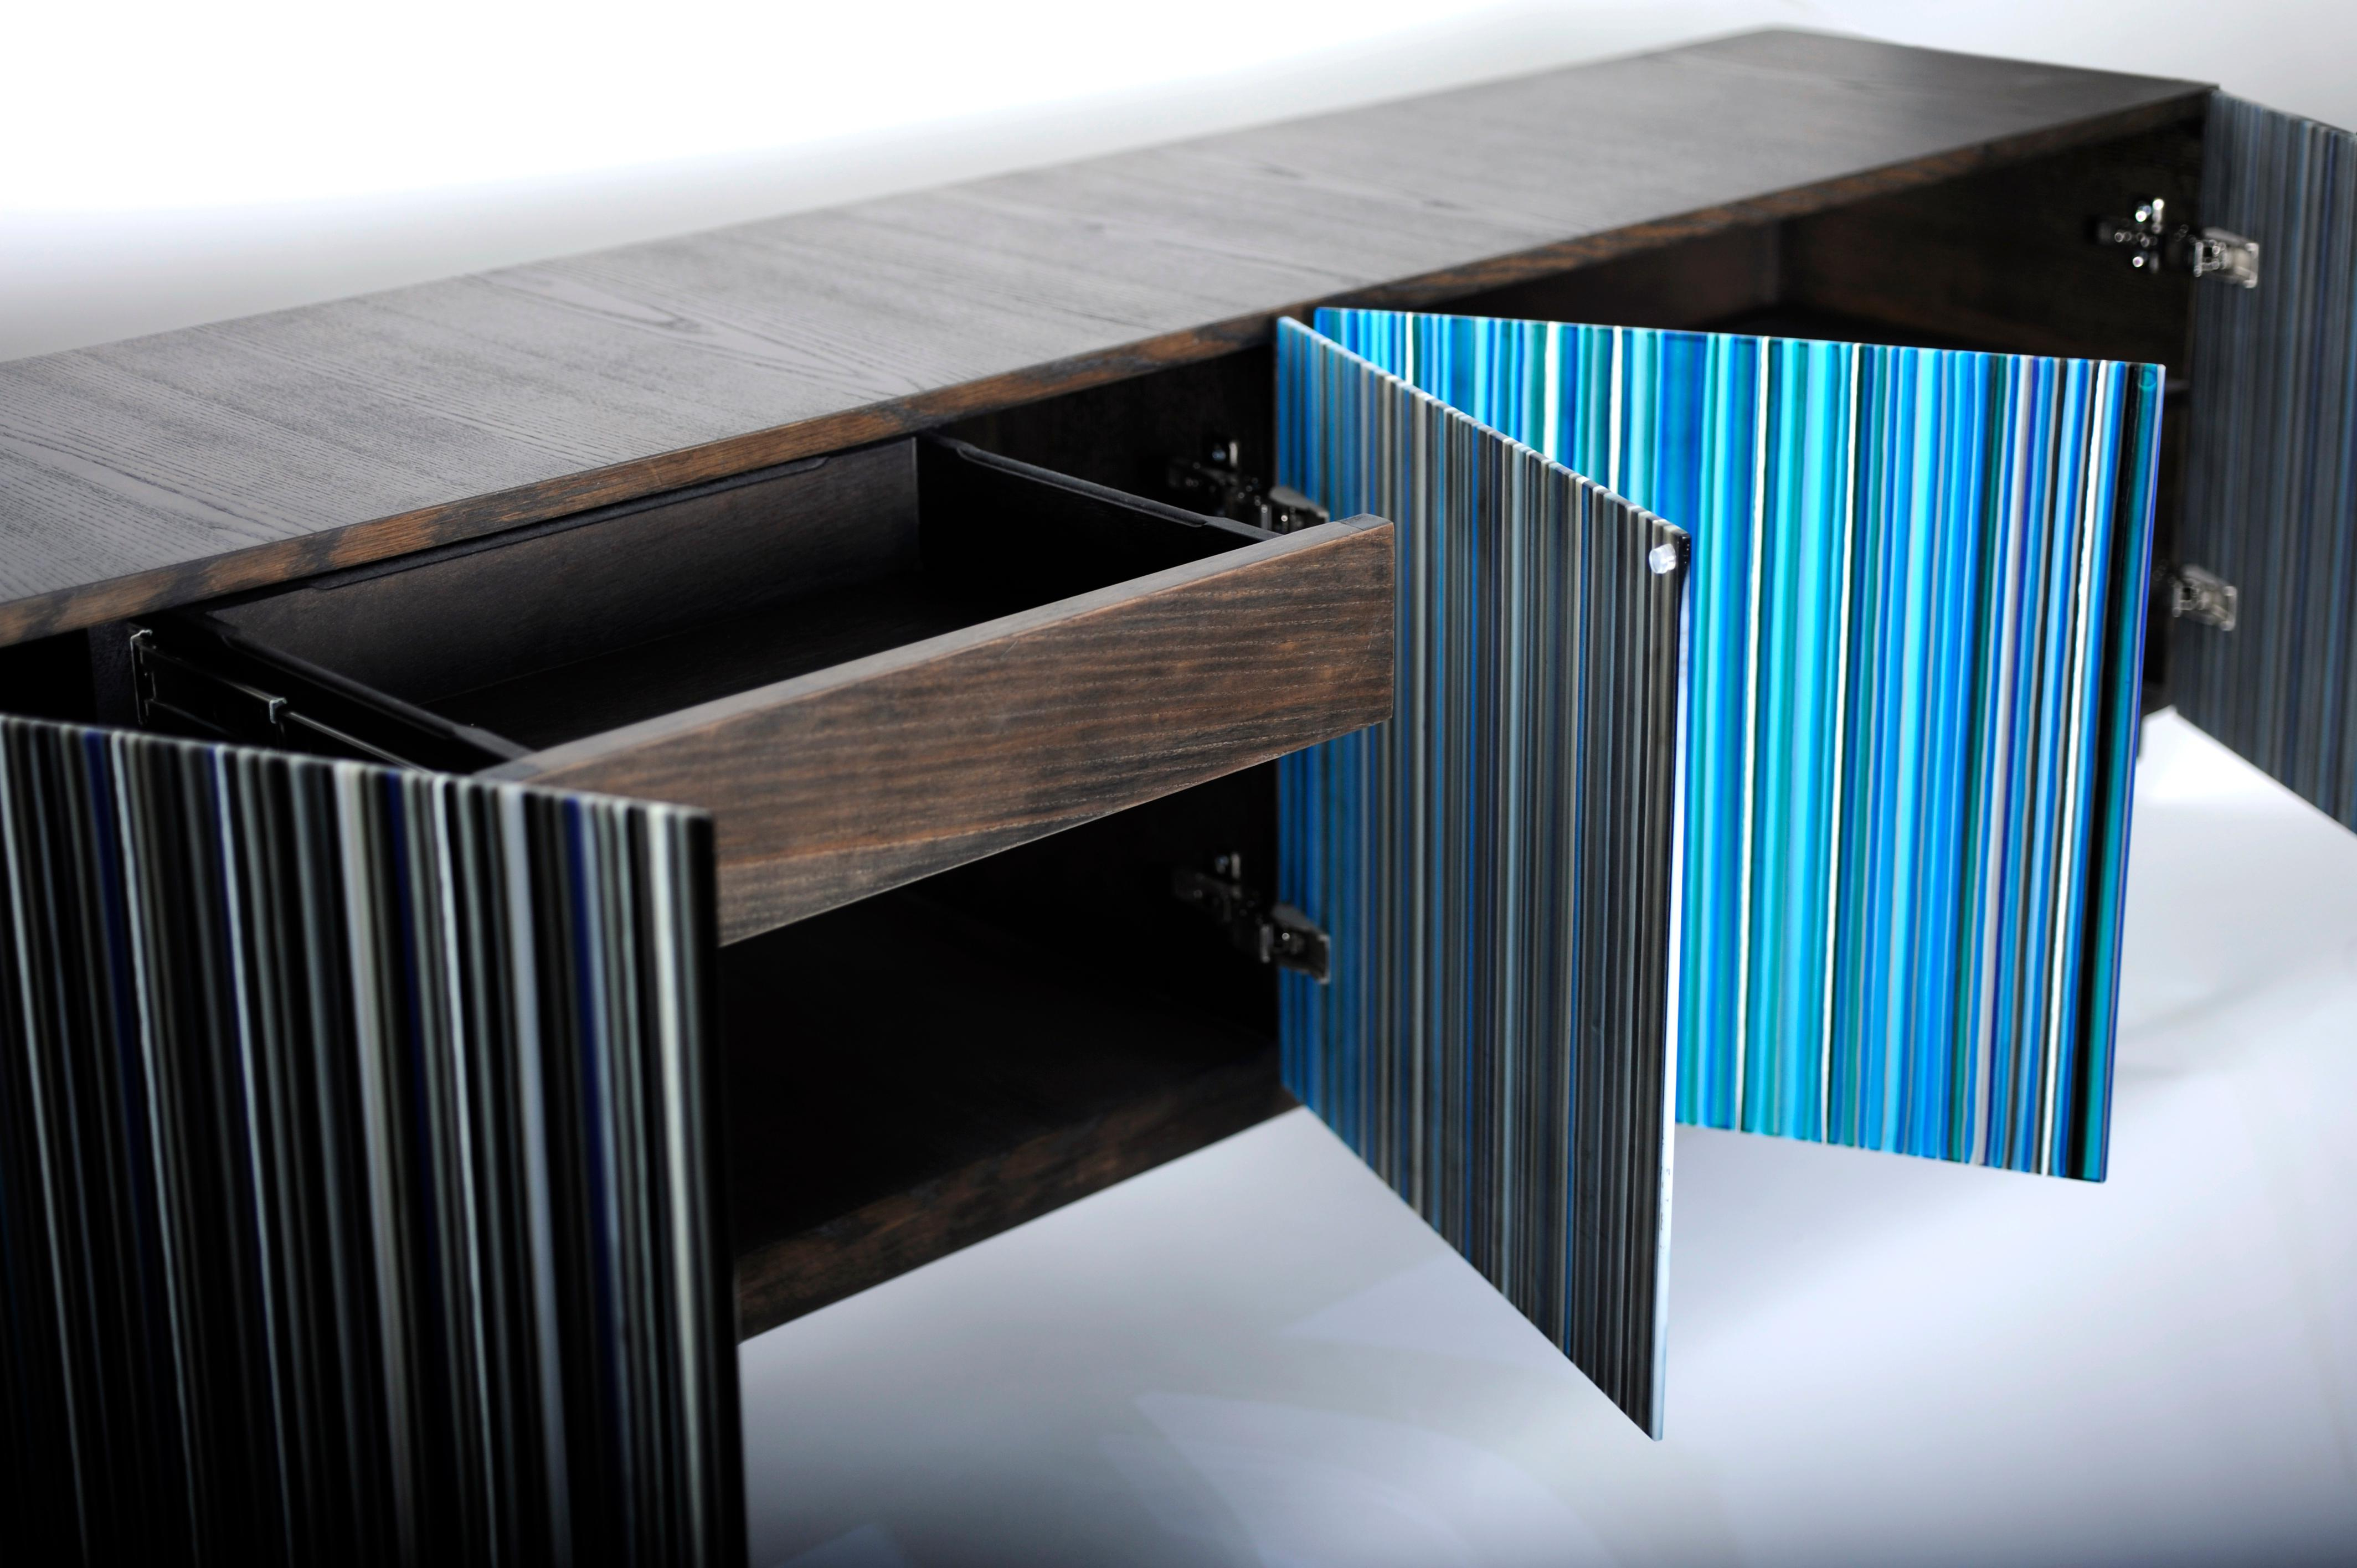 Retro Style Buffet Credenza, Barcode Design In Colored Glass, Shades Of Blue Intended For Blue Stained Glass Credenzas (View 10 of 20)